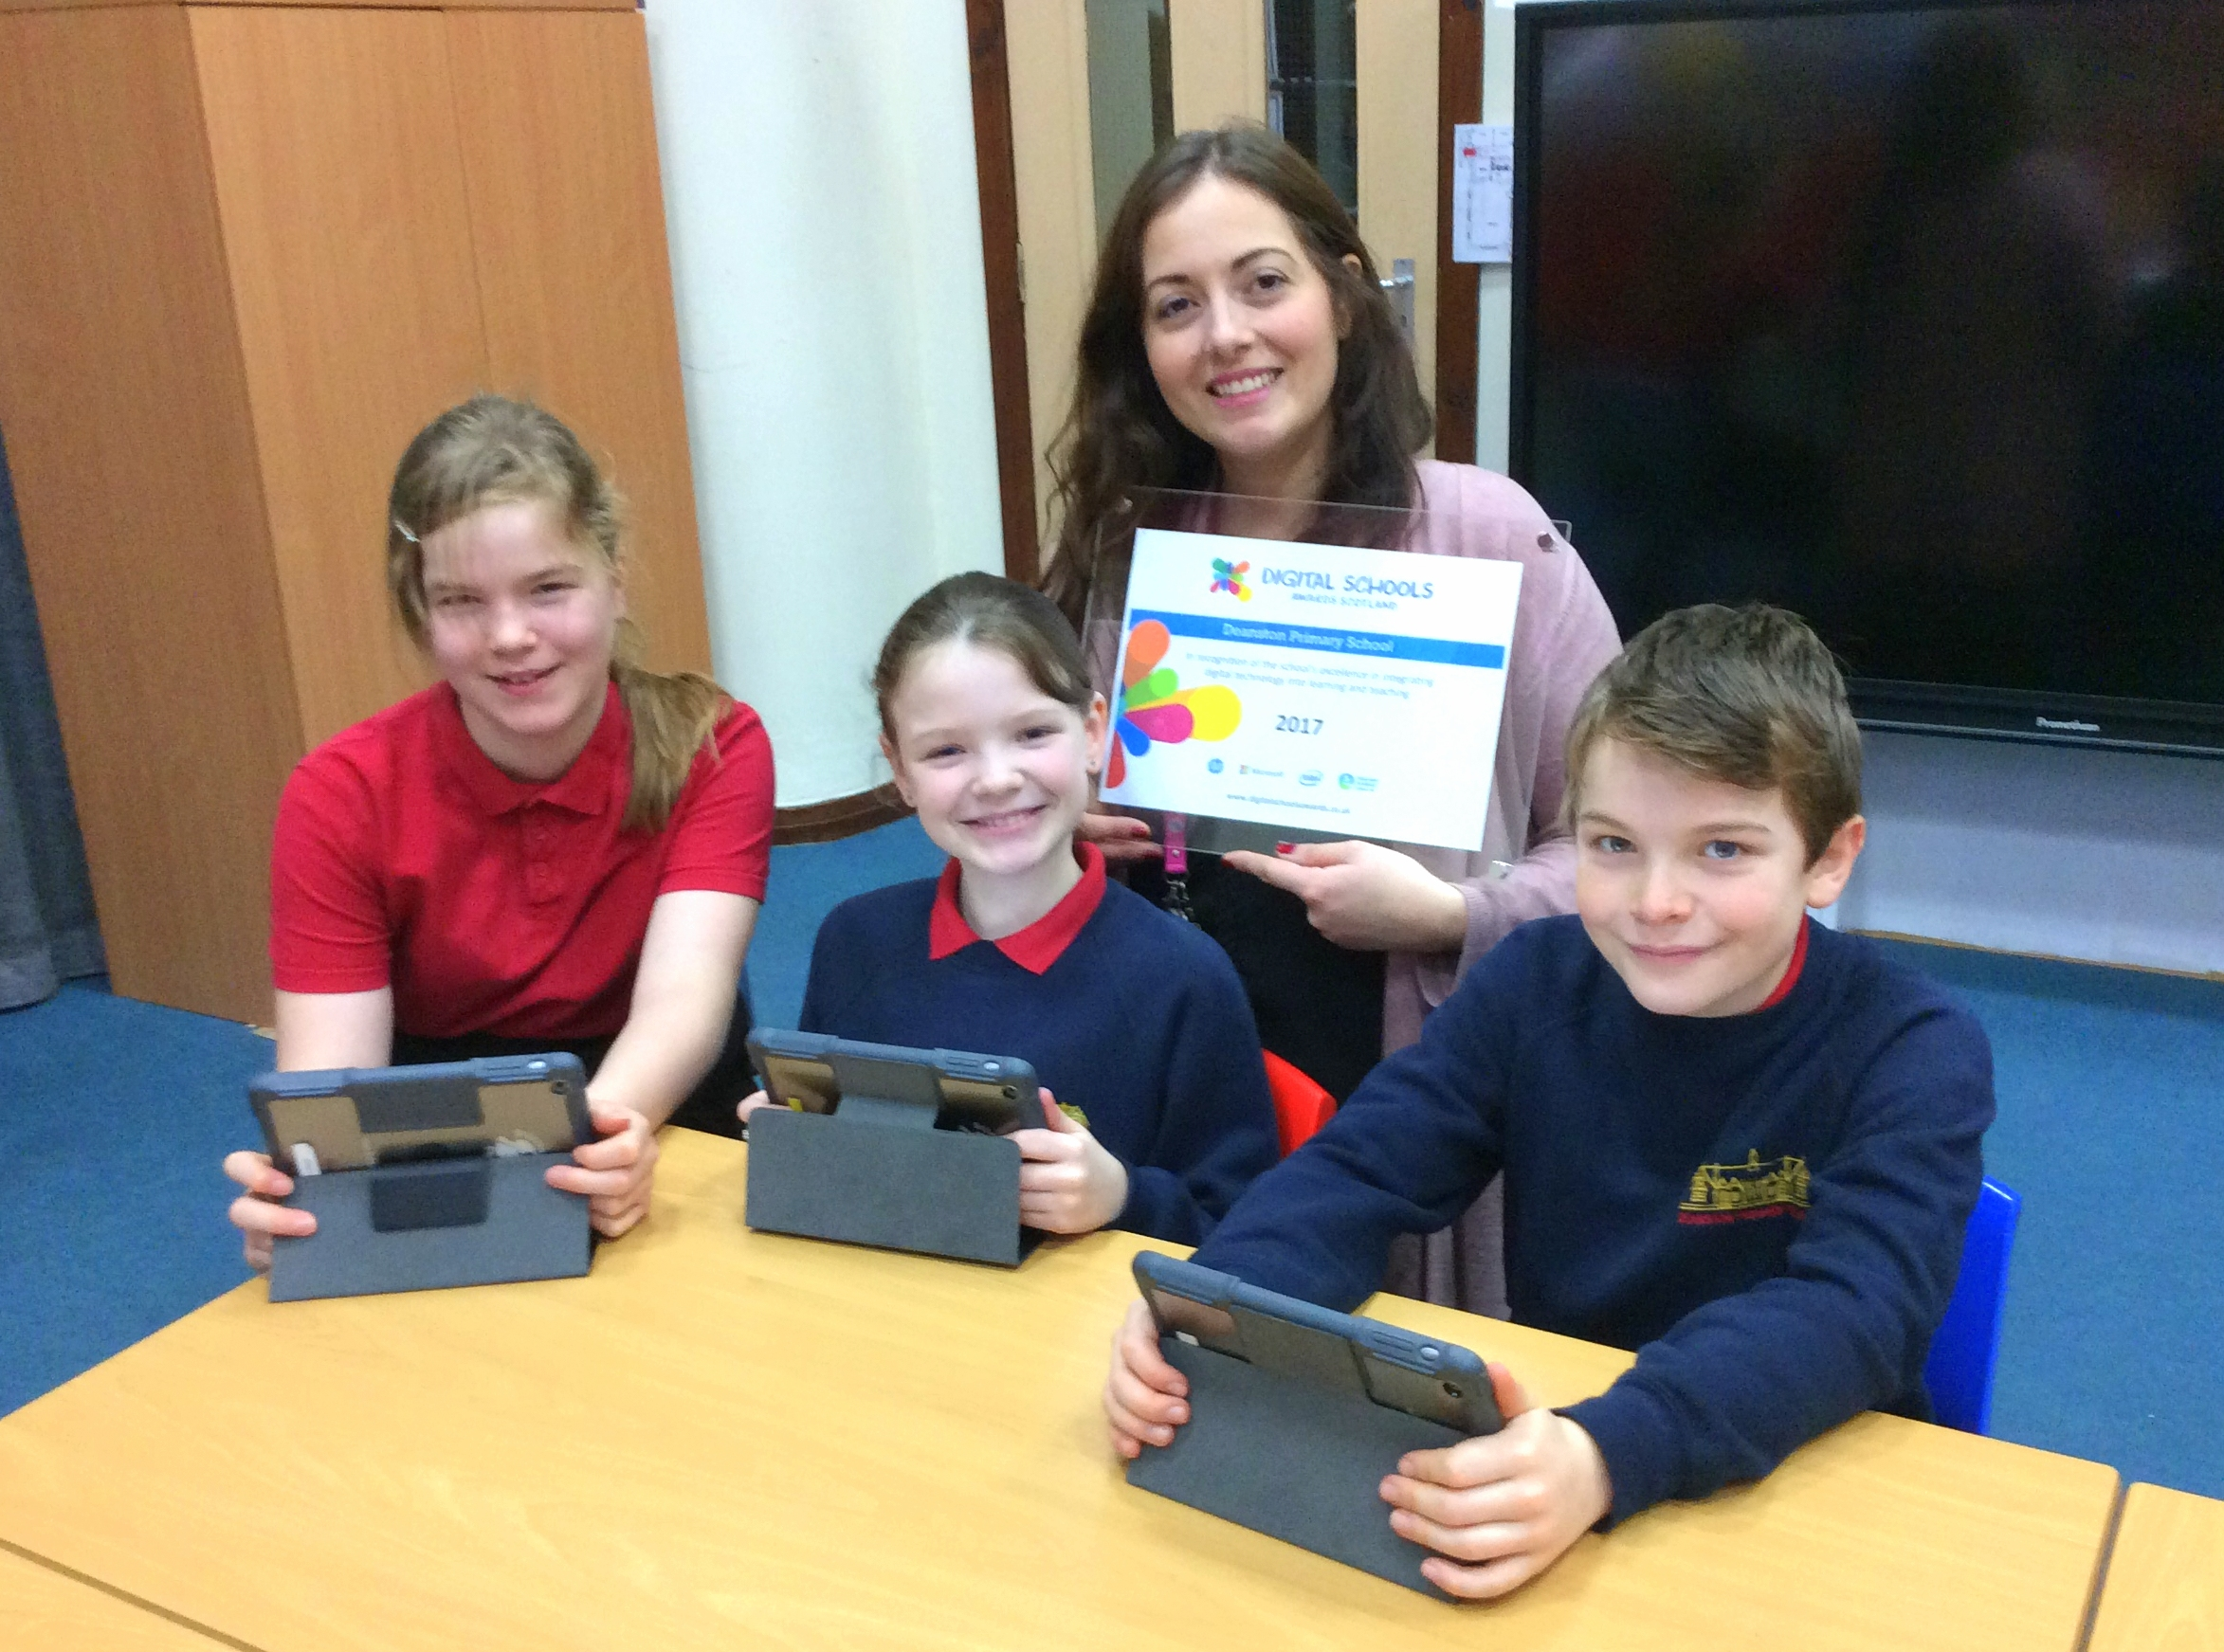 'Digital School' status for Stirling primary